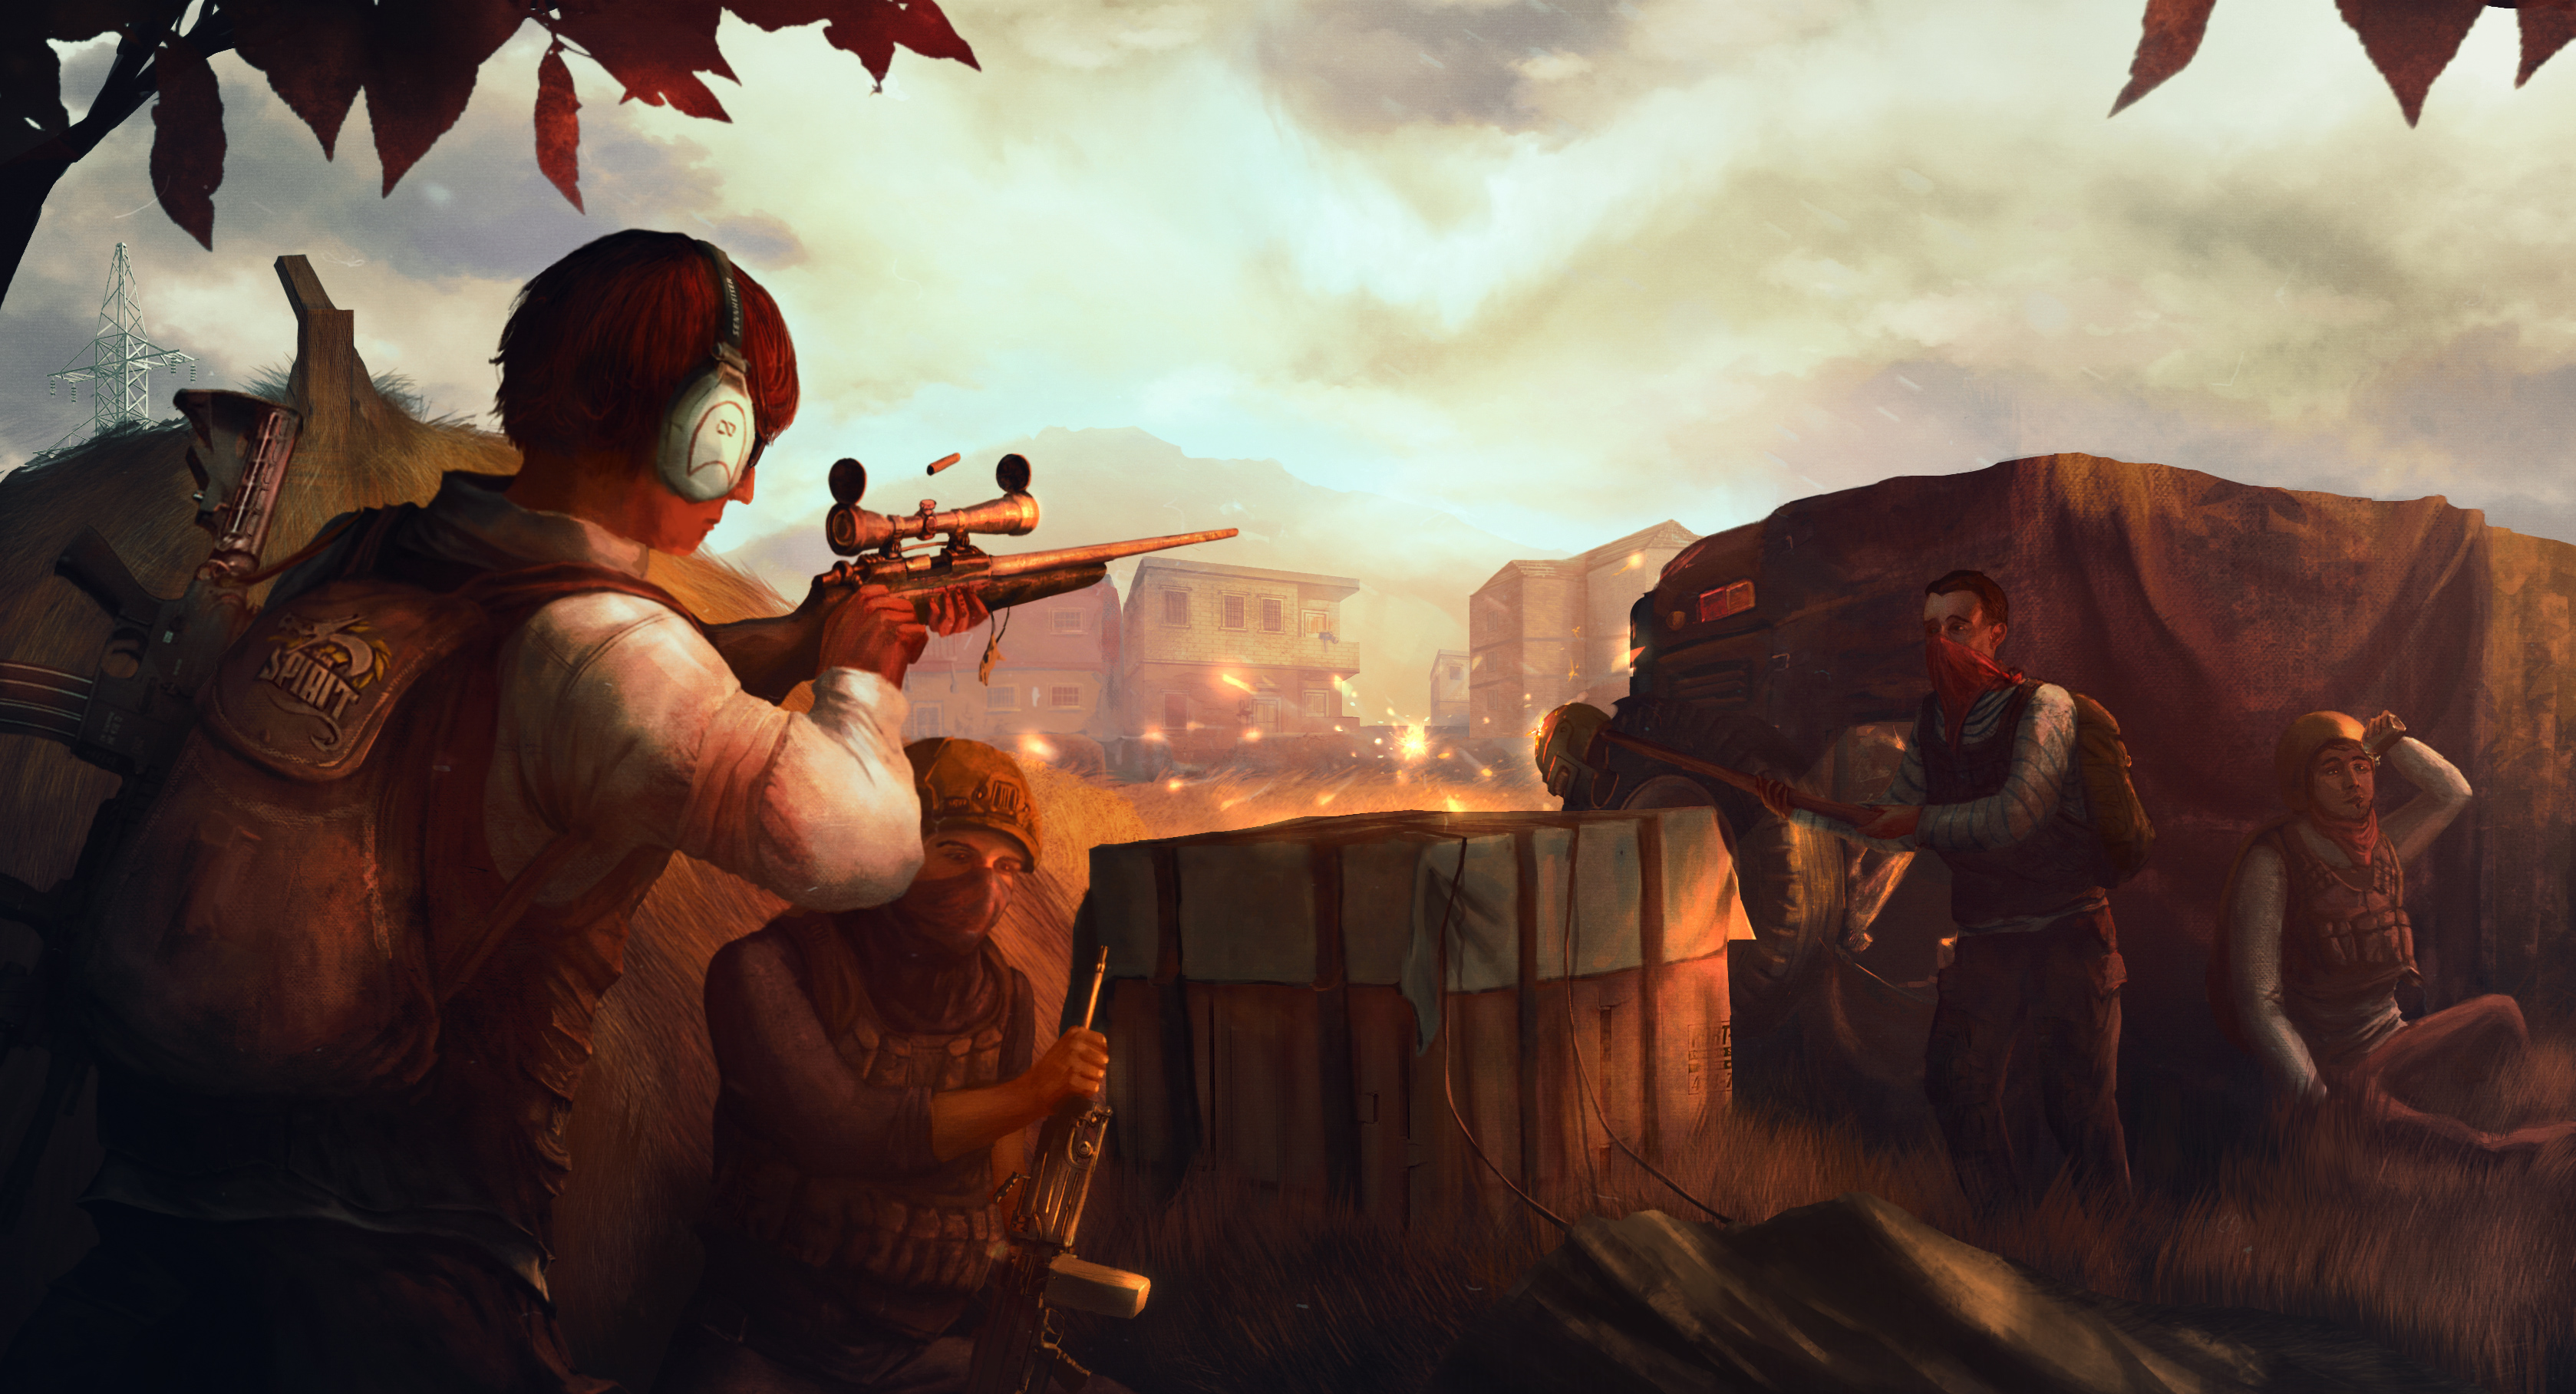 Pubg Wallpaper Iphone 6 Plus: 1280x2120 Pubg Game Girl Fanart Iphone 6 Hd 4k Wallpapers